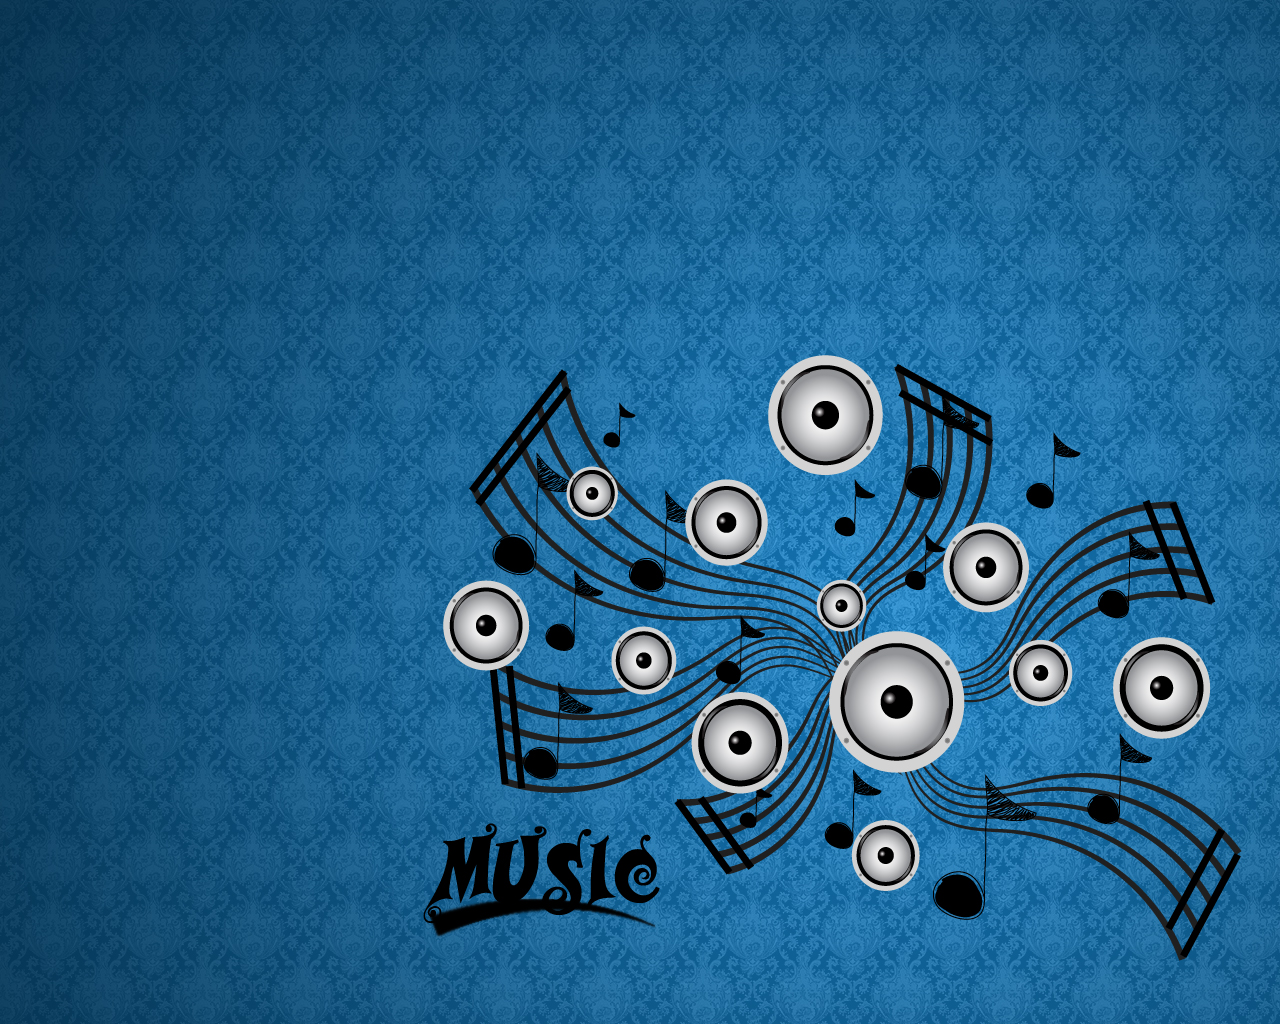 Theme music - plain wallpaper with musical notes